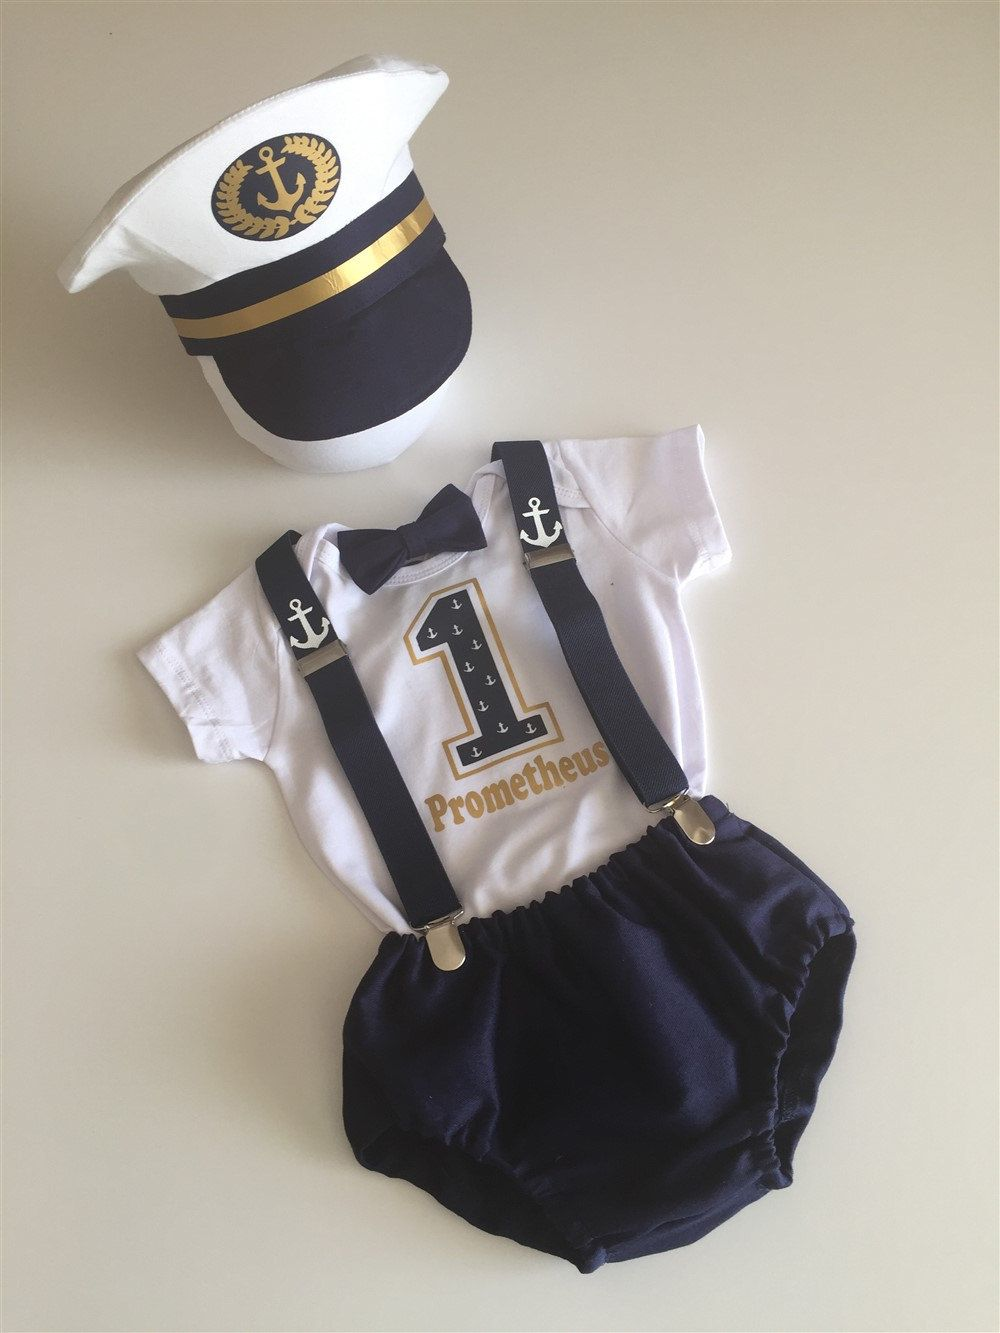 1st Birthday Outfit Boy, Baby Boy Blue 1st Birthday Outfit, Elite Ship Captain, Cake Smash Outfit, Cake Smash Prop, Baby Sailor, Sailor Boy #boybirthdayparties